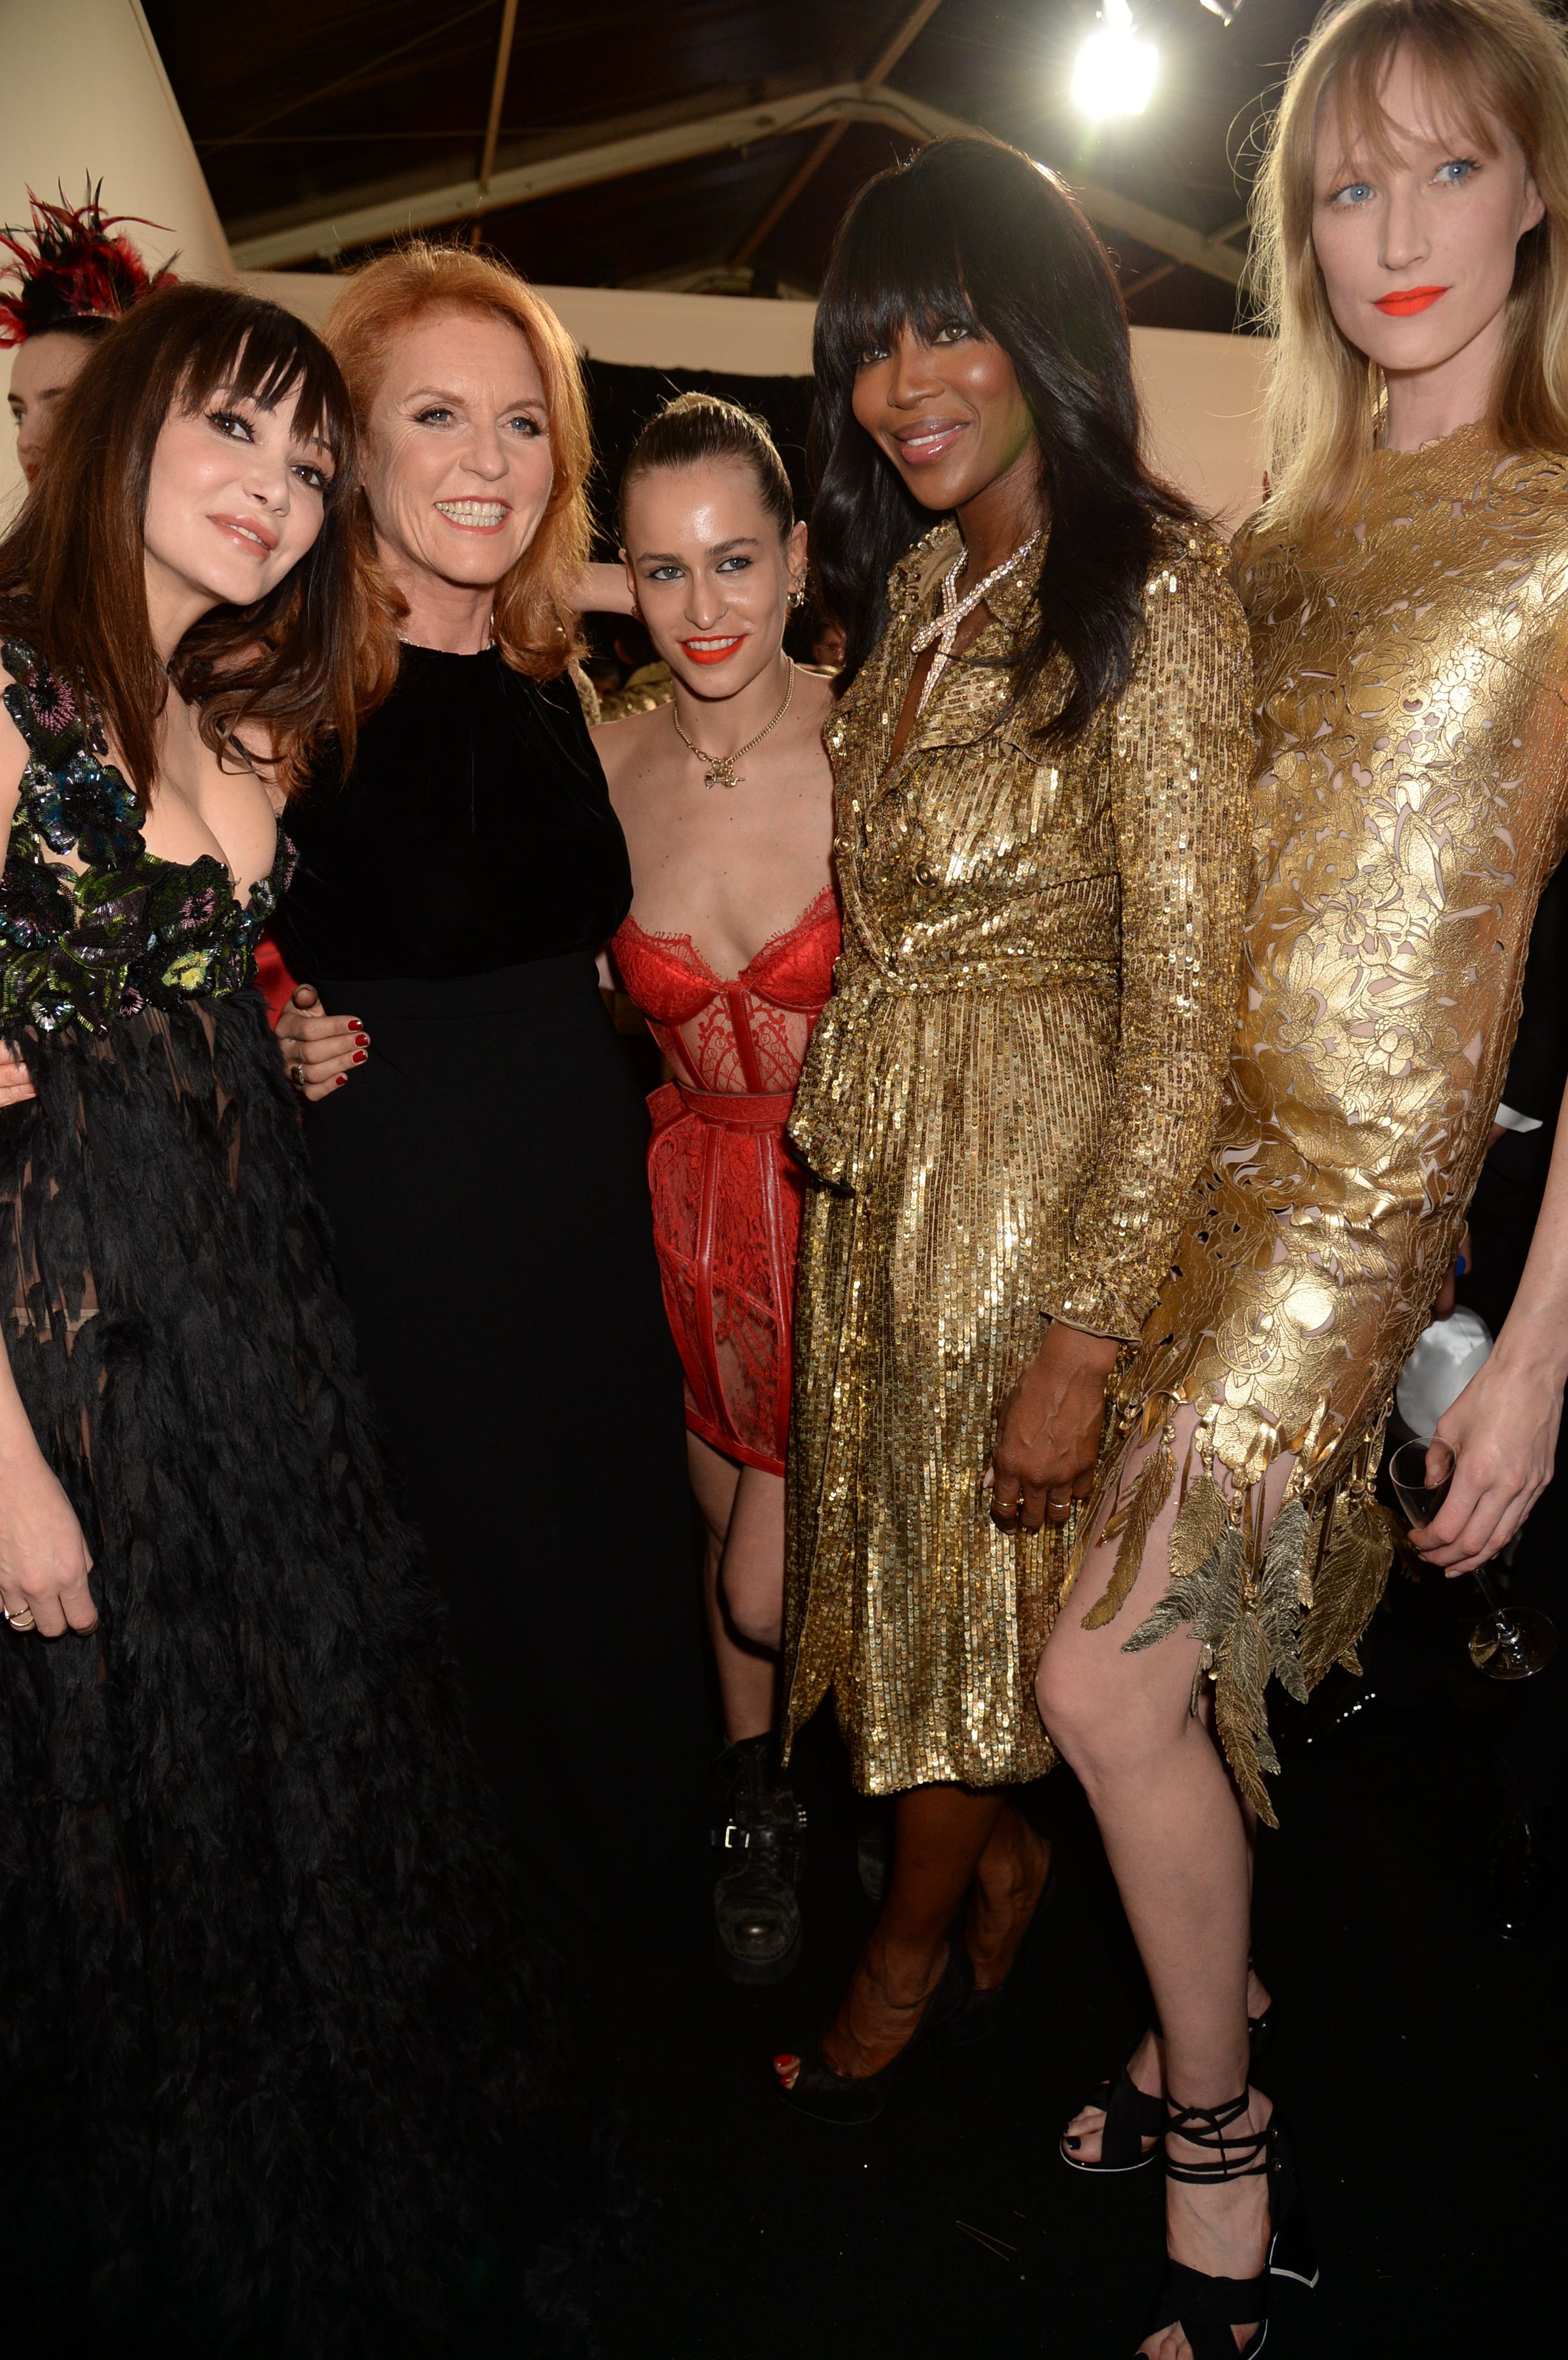 Annabelle Neilson, Sarah Ferguson, Alice Dellal, Naomi Campbell and Jade Parfitt at the Fashion For Relief Show in 2015